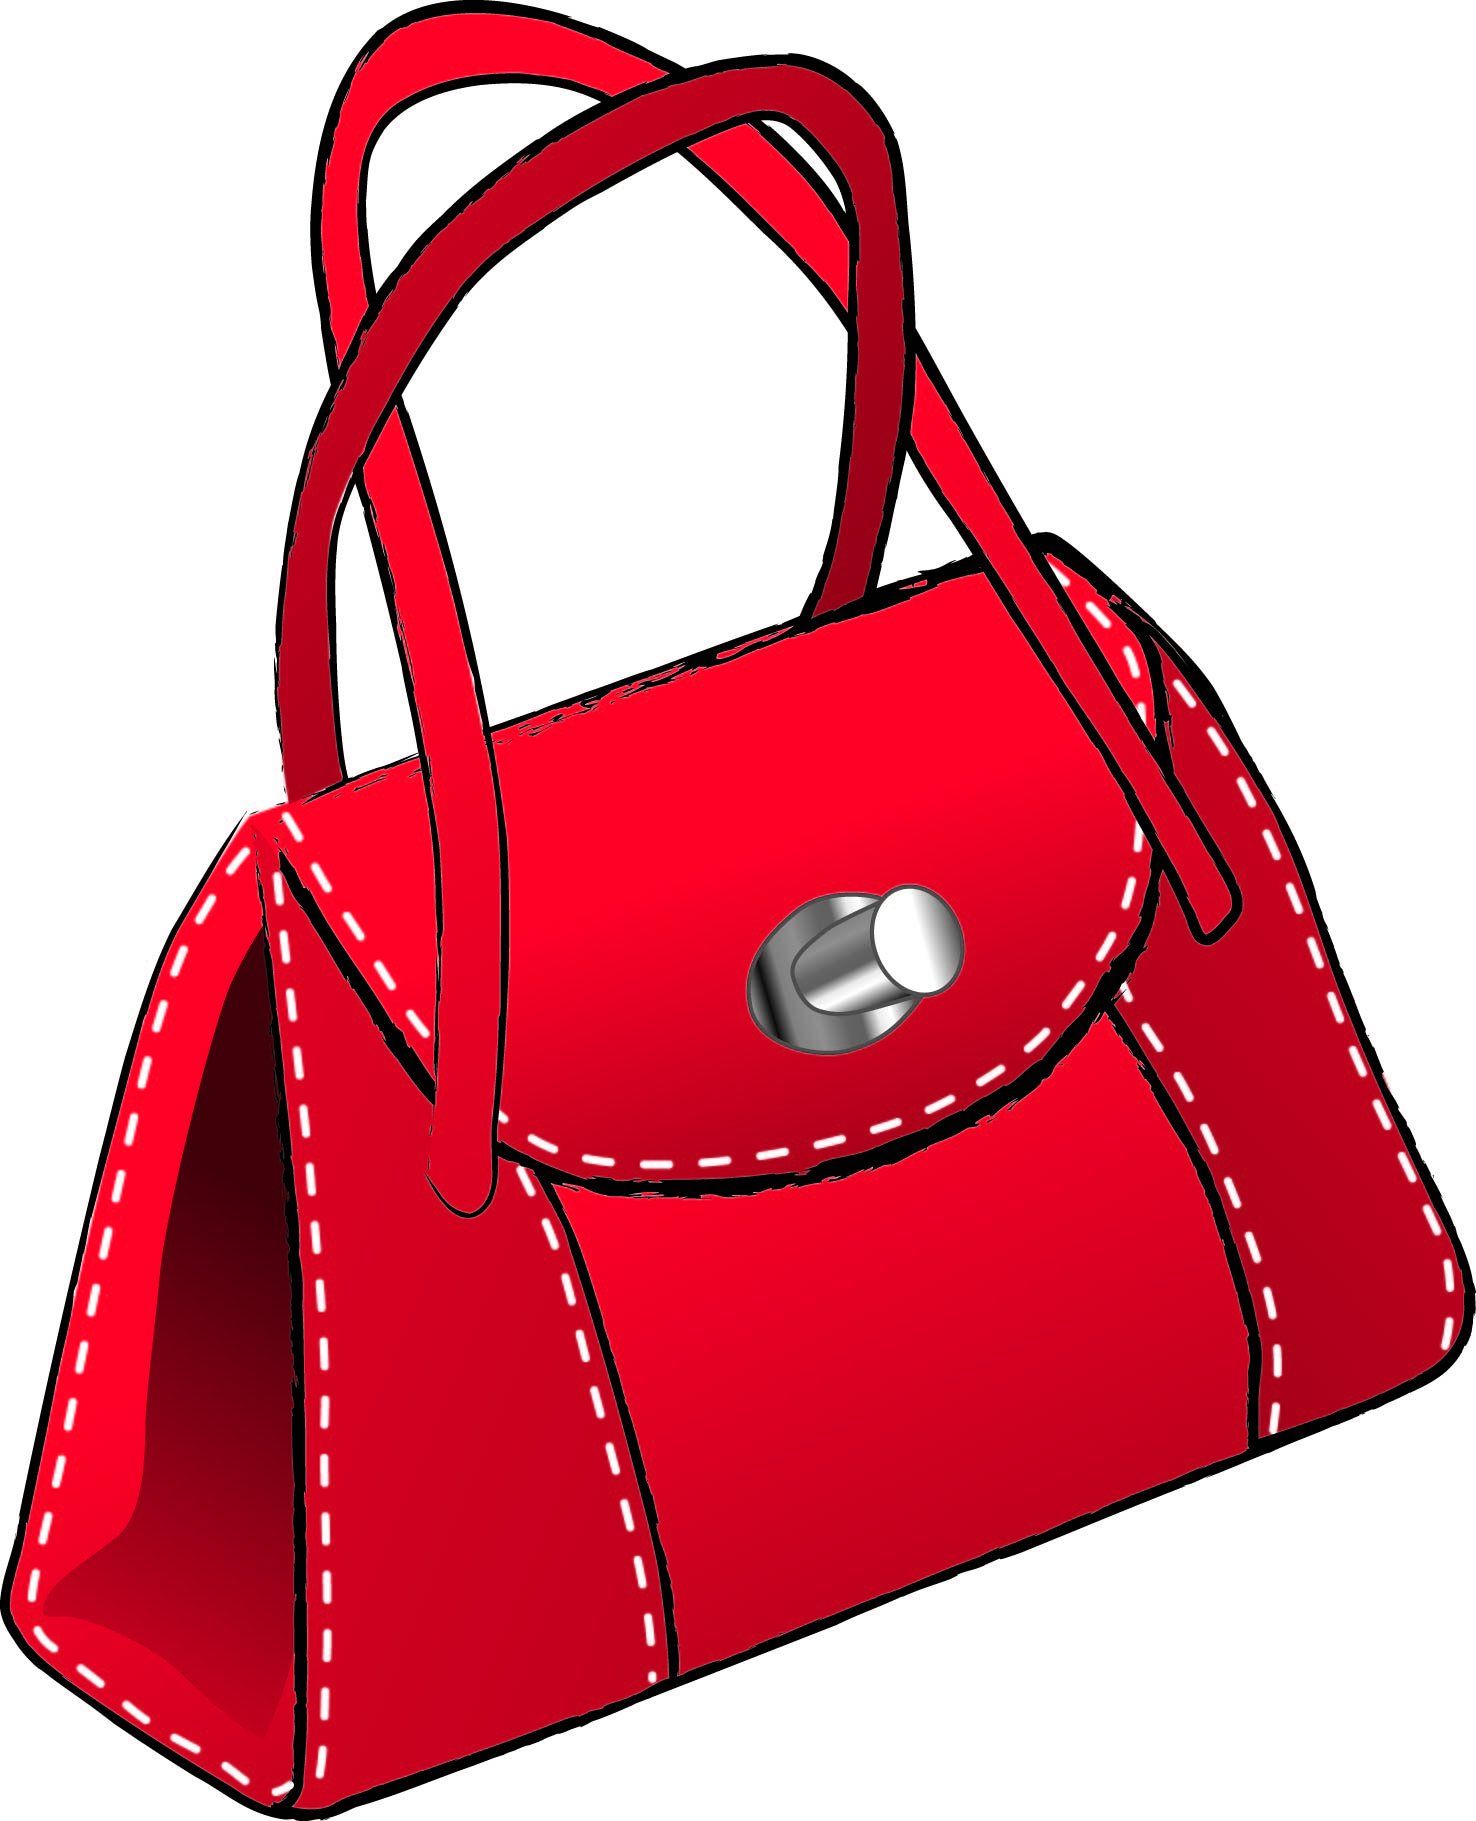 Free Purse Pictures, Download Free Clip Art, Free Clip Art.